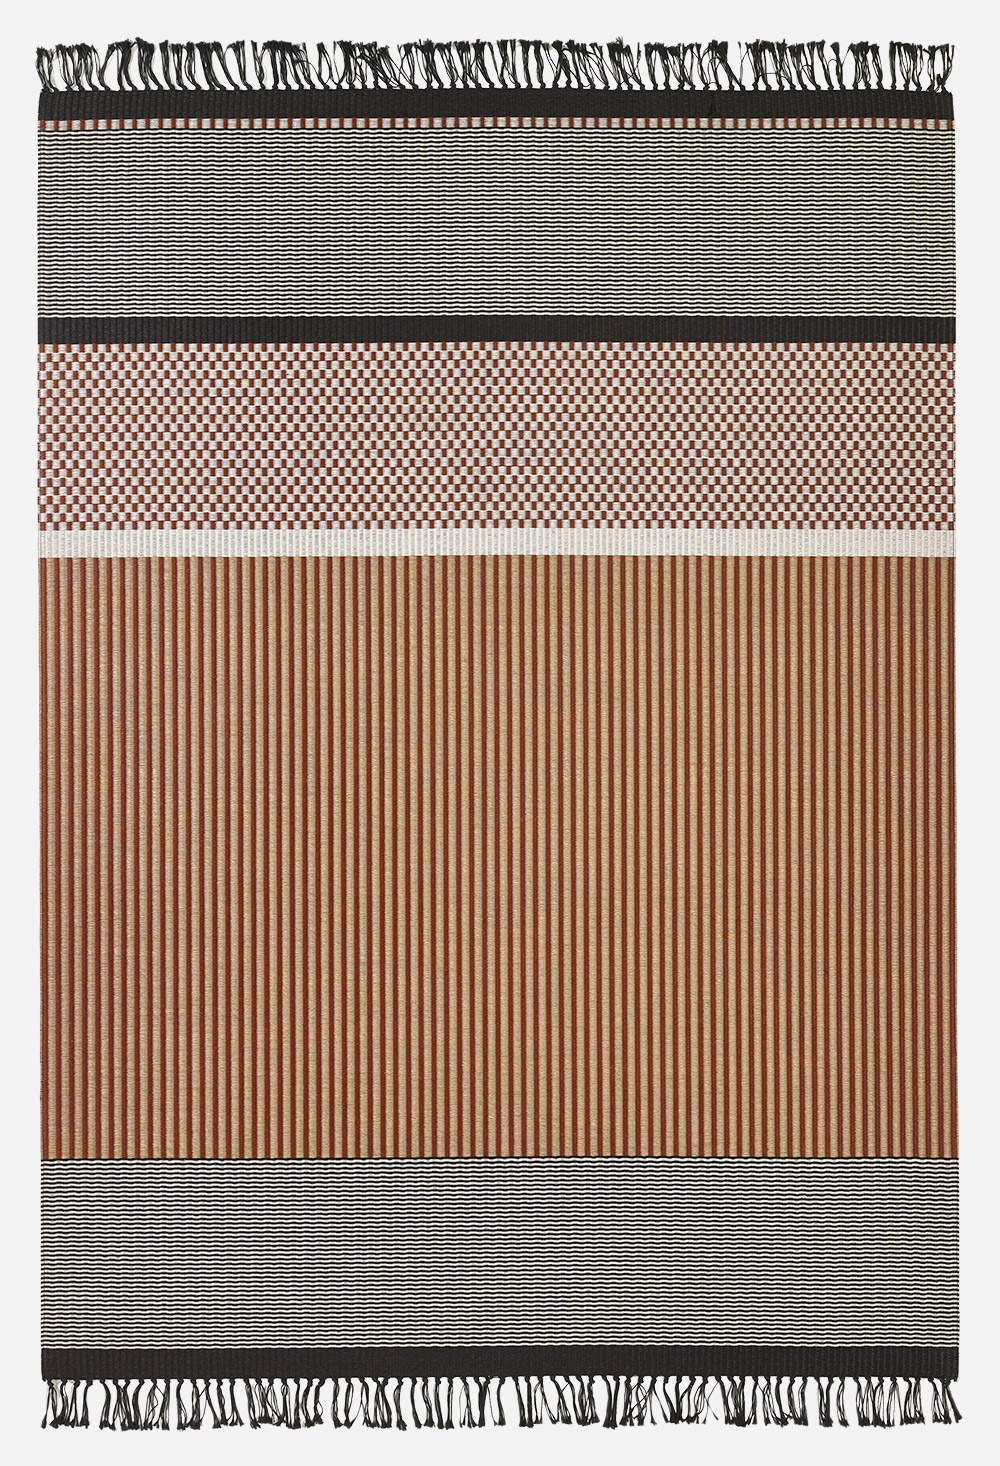 San Francisco carpet in tan, stone and black by Woodnotes